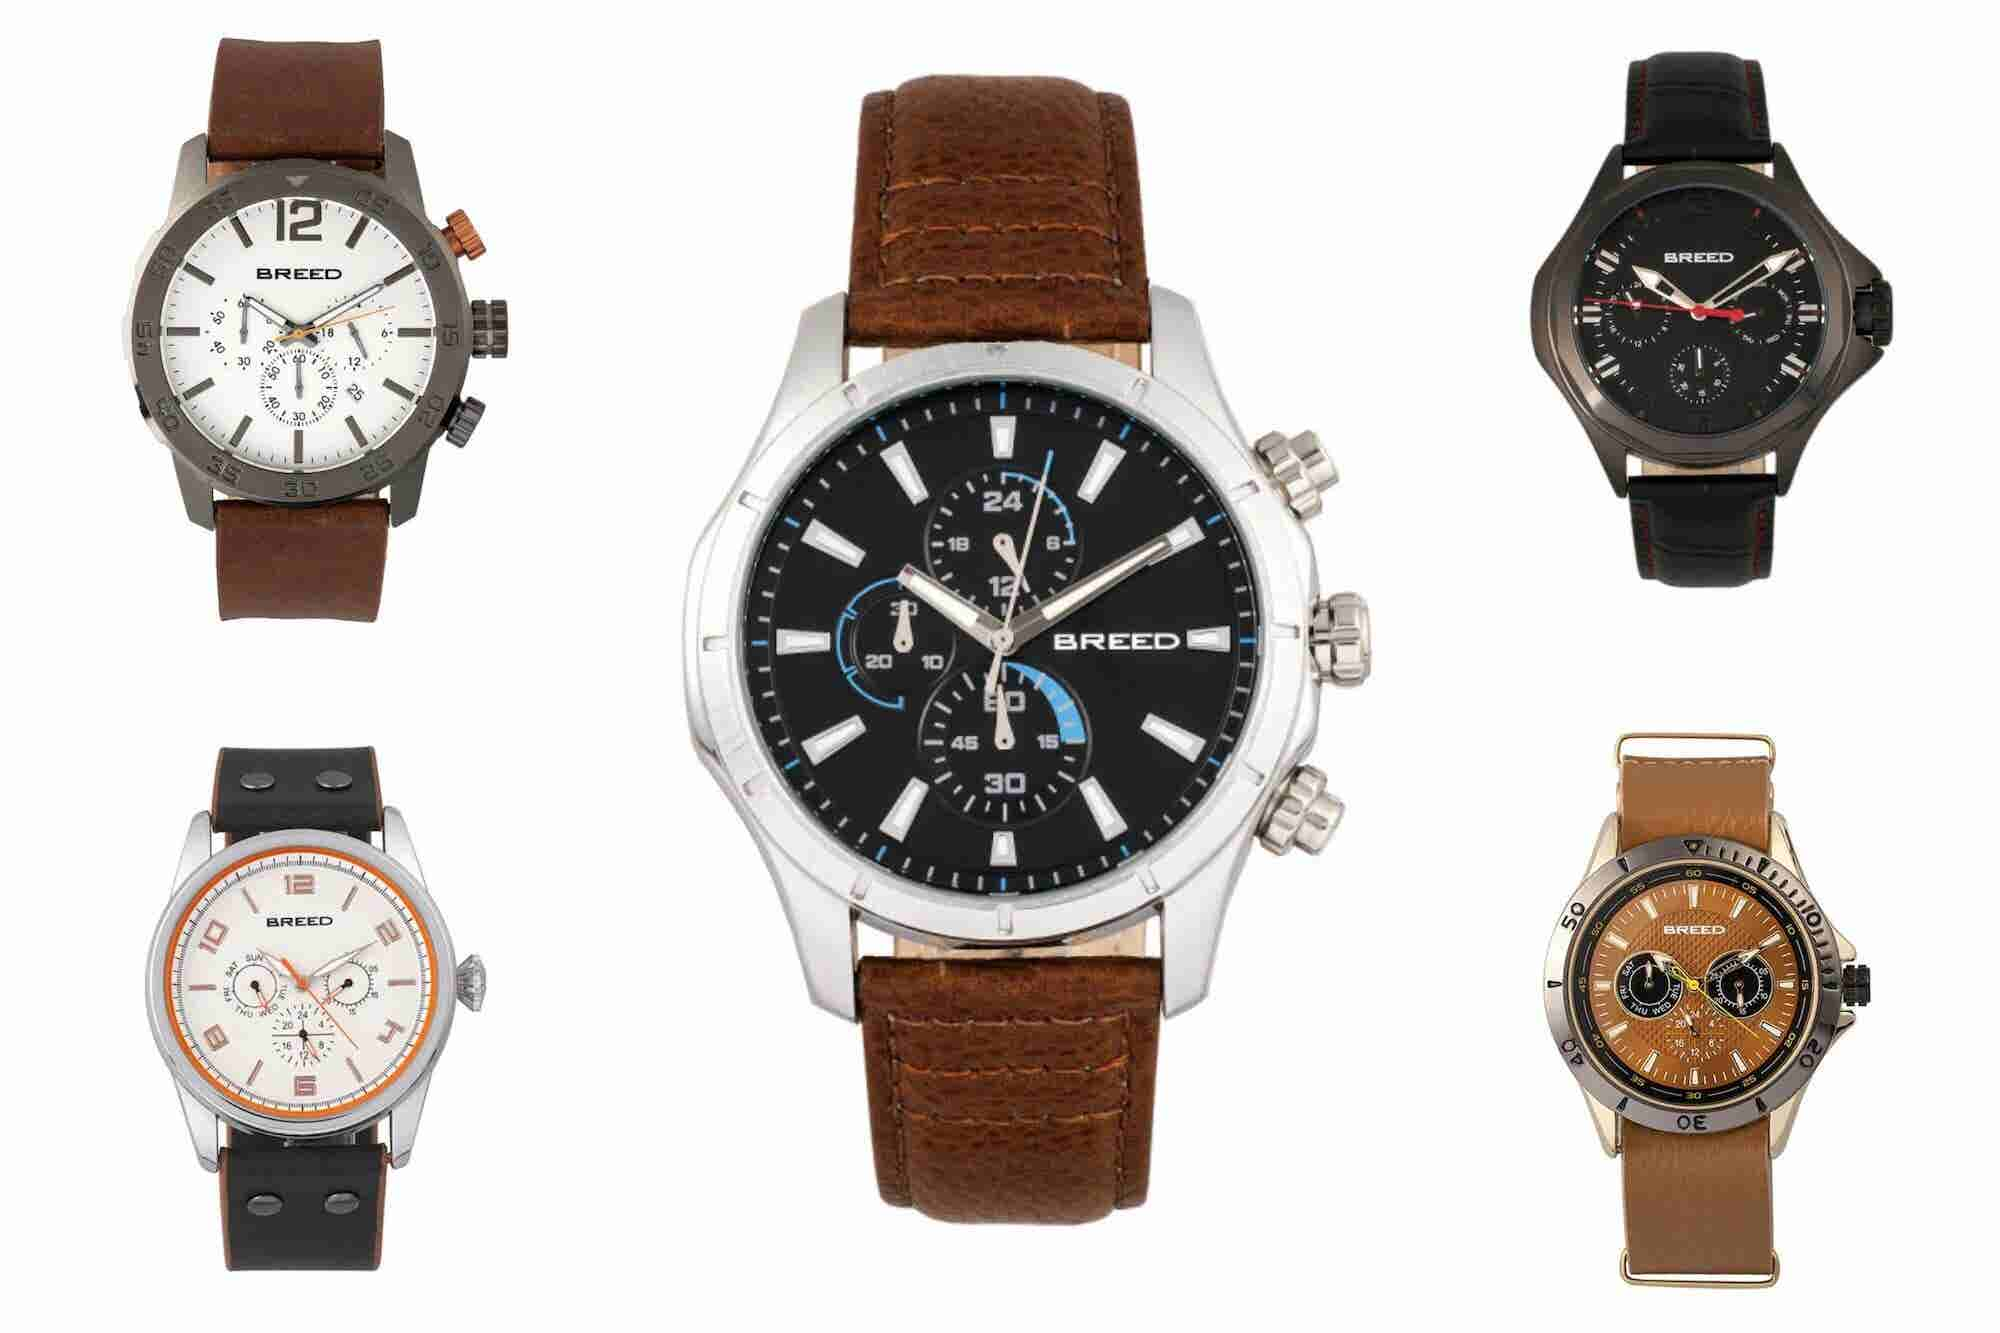 Add a Classy Touch to Your Workwear With These Sub-$100 Watches